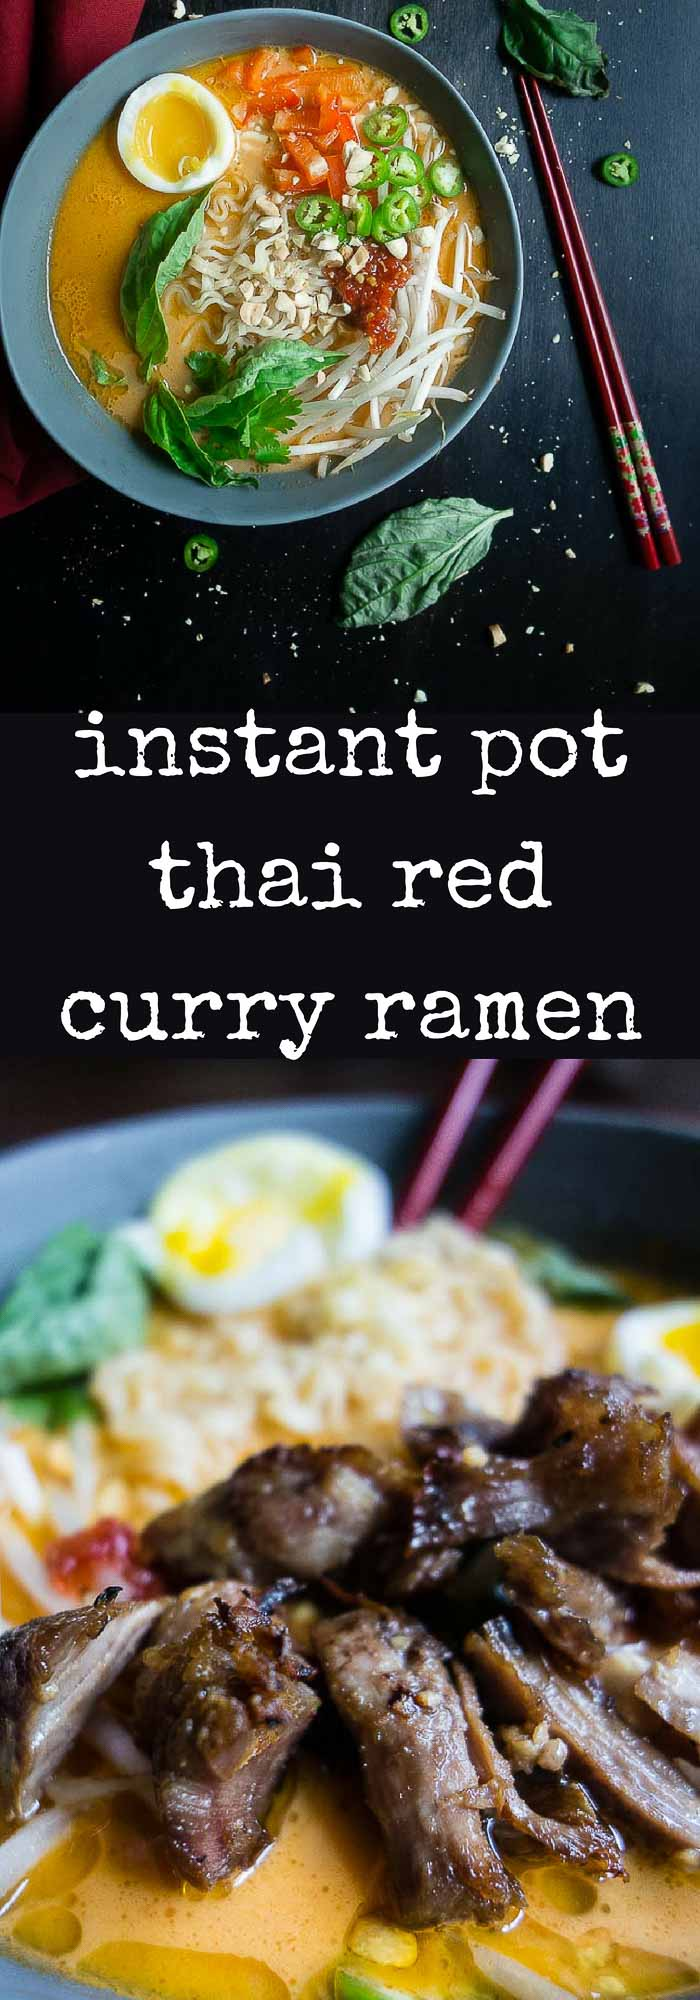 Thai Red Curry Ramen packed with delicious flavors like red curry paste, coconut milk, and melt-in-your-mouth caramelized pork ready in 1 hour!curry noodle soup| red curry ramen | thai ramen| coconut curry soup | thai noodle soup | instant pot soup | instant pot curry | caramelized pork ramen | instant pot pork | chashu | curry coconut ramen